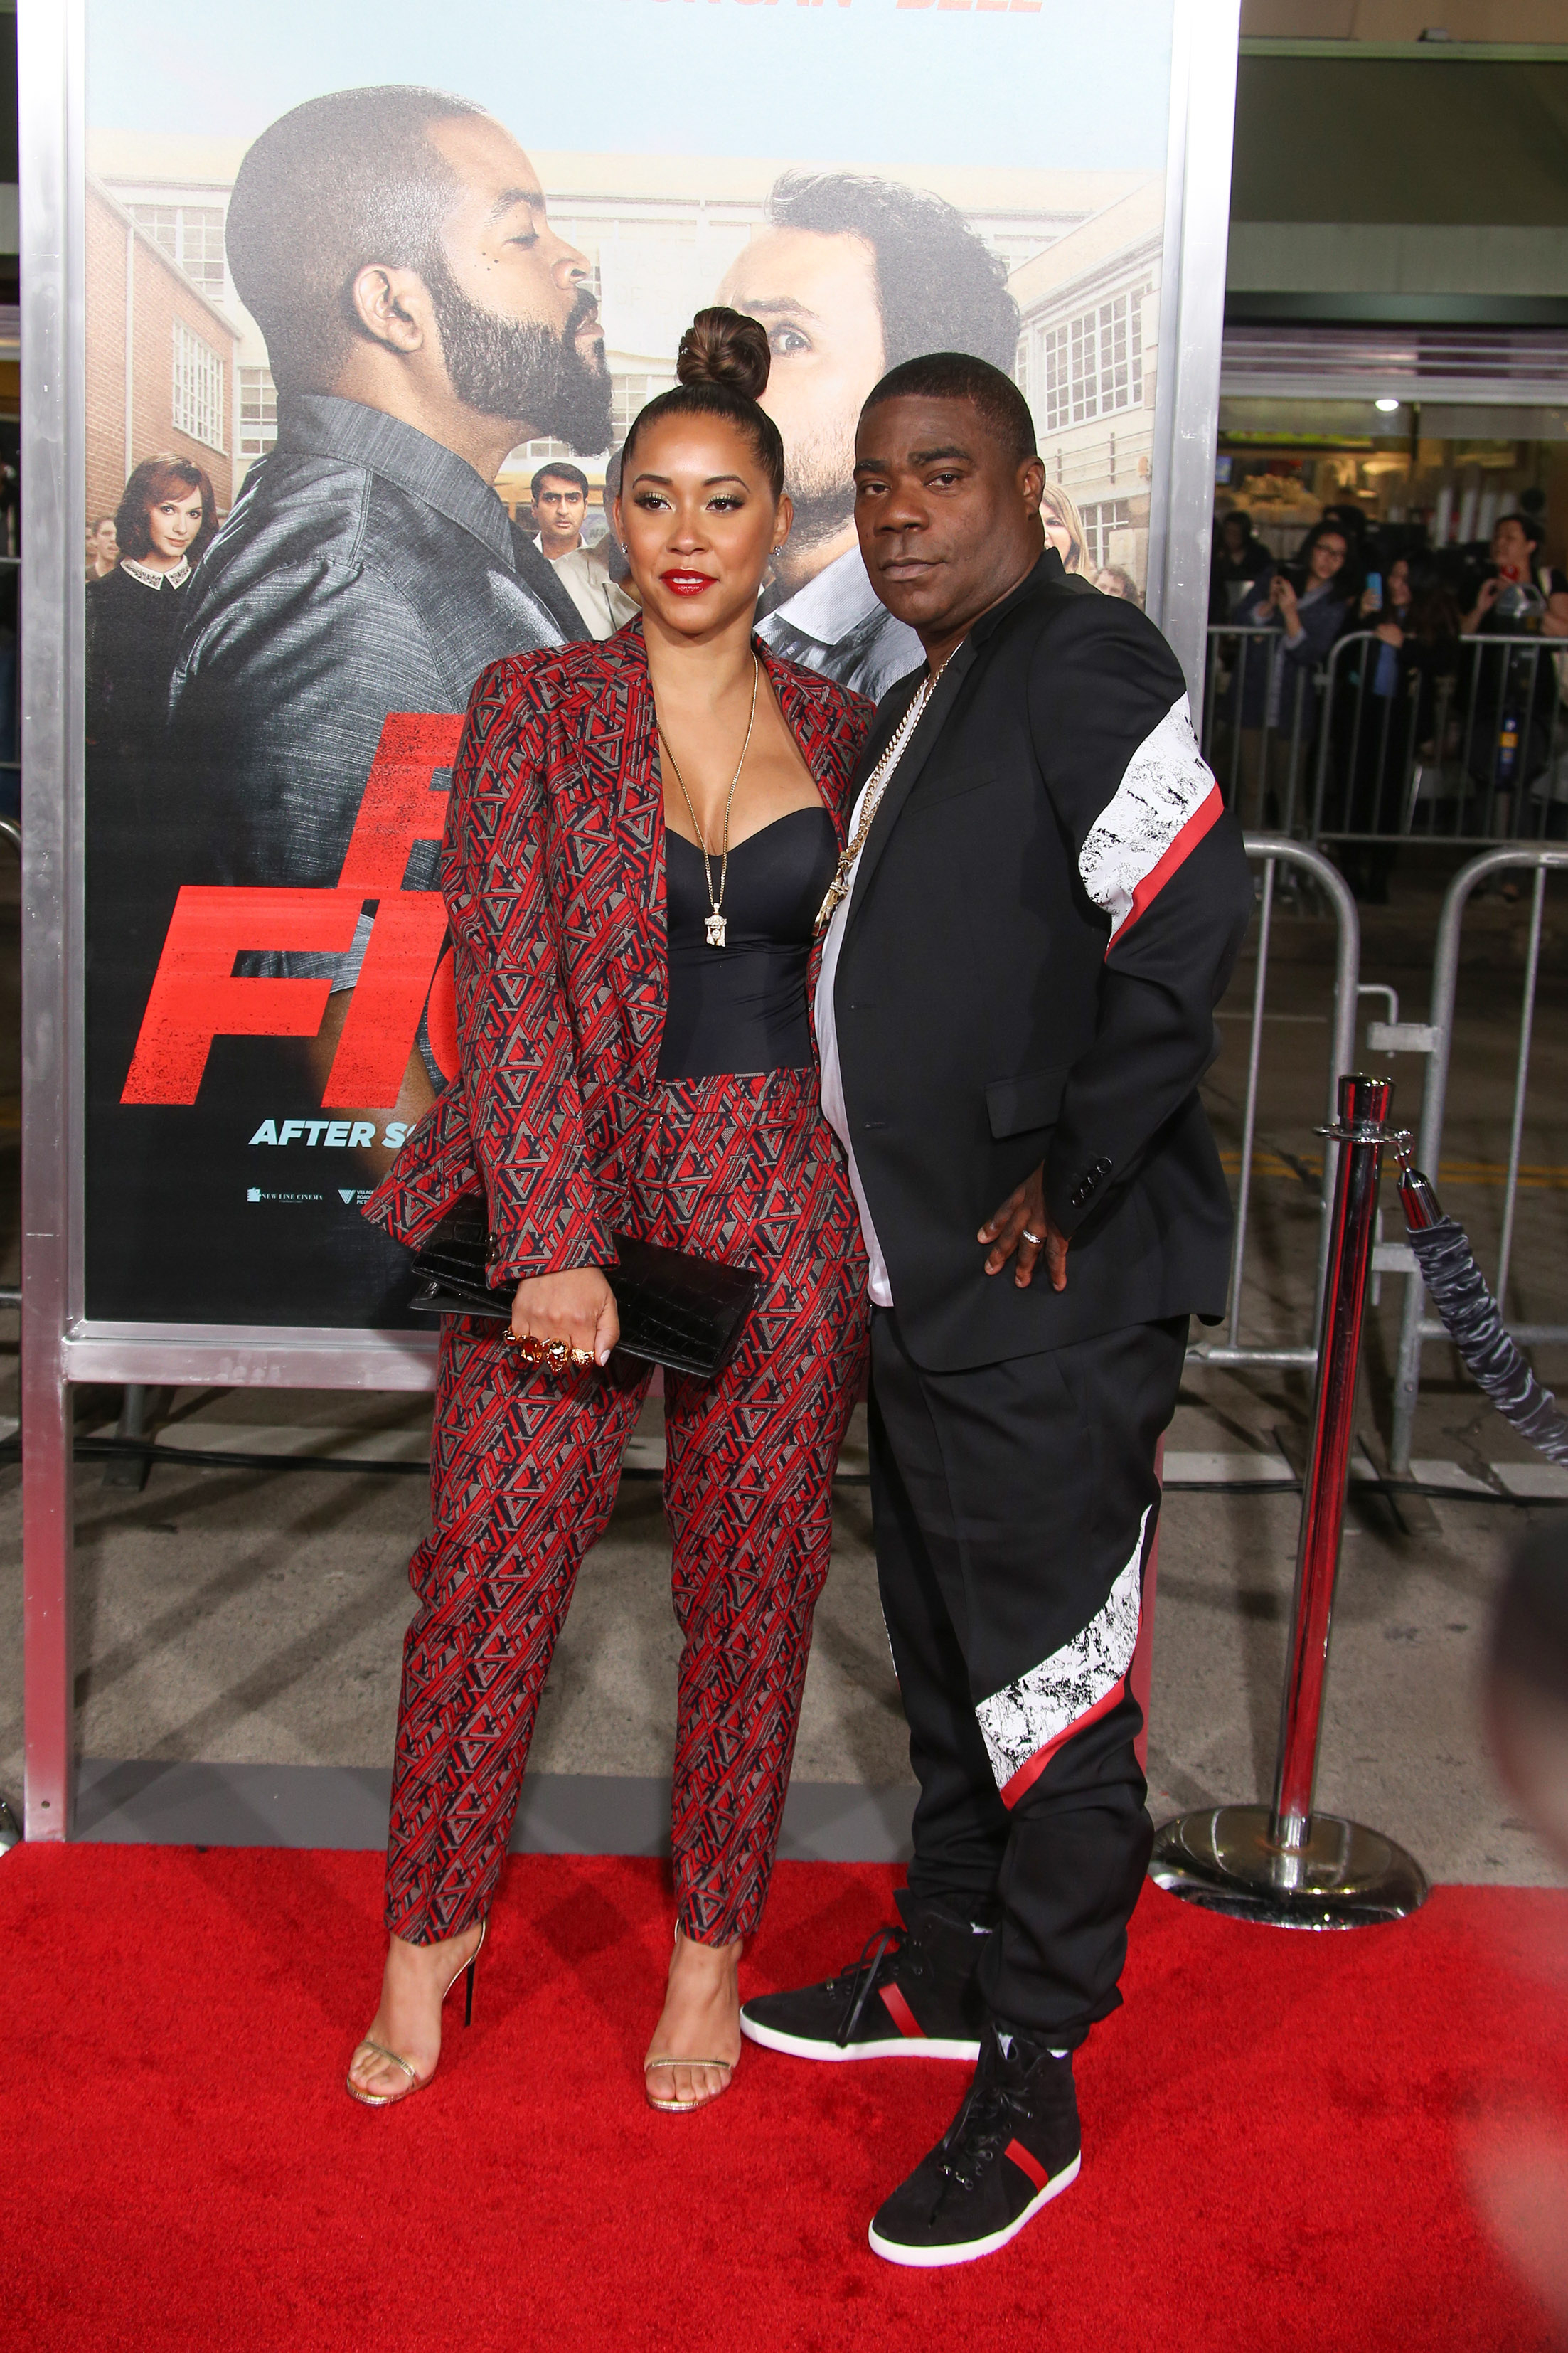 "02/13/2017 - Megan Wollover, Tracy Morgan - ""Fist Fight"" Los Angeles Premiere - Arrivals - Regency Village Theater - Westwood, CA, USA - Keywords: Vertical, Comedy, Red Carpet Event, Person, People, Movie Premiere, Film Industry, Arrival, Portrait, Photography, Arts Culture and Entertainment, Celebrity, Celebrities, City of Los Angeles, California Orientation: Portrait Face Count: 1 - False - Photo Credit: PRPhotos.com - Contact (1-866-551-7827) - Portrait Face Count: 1"